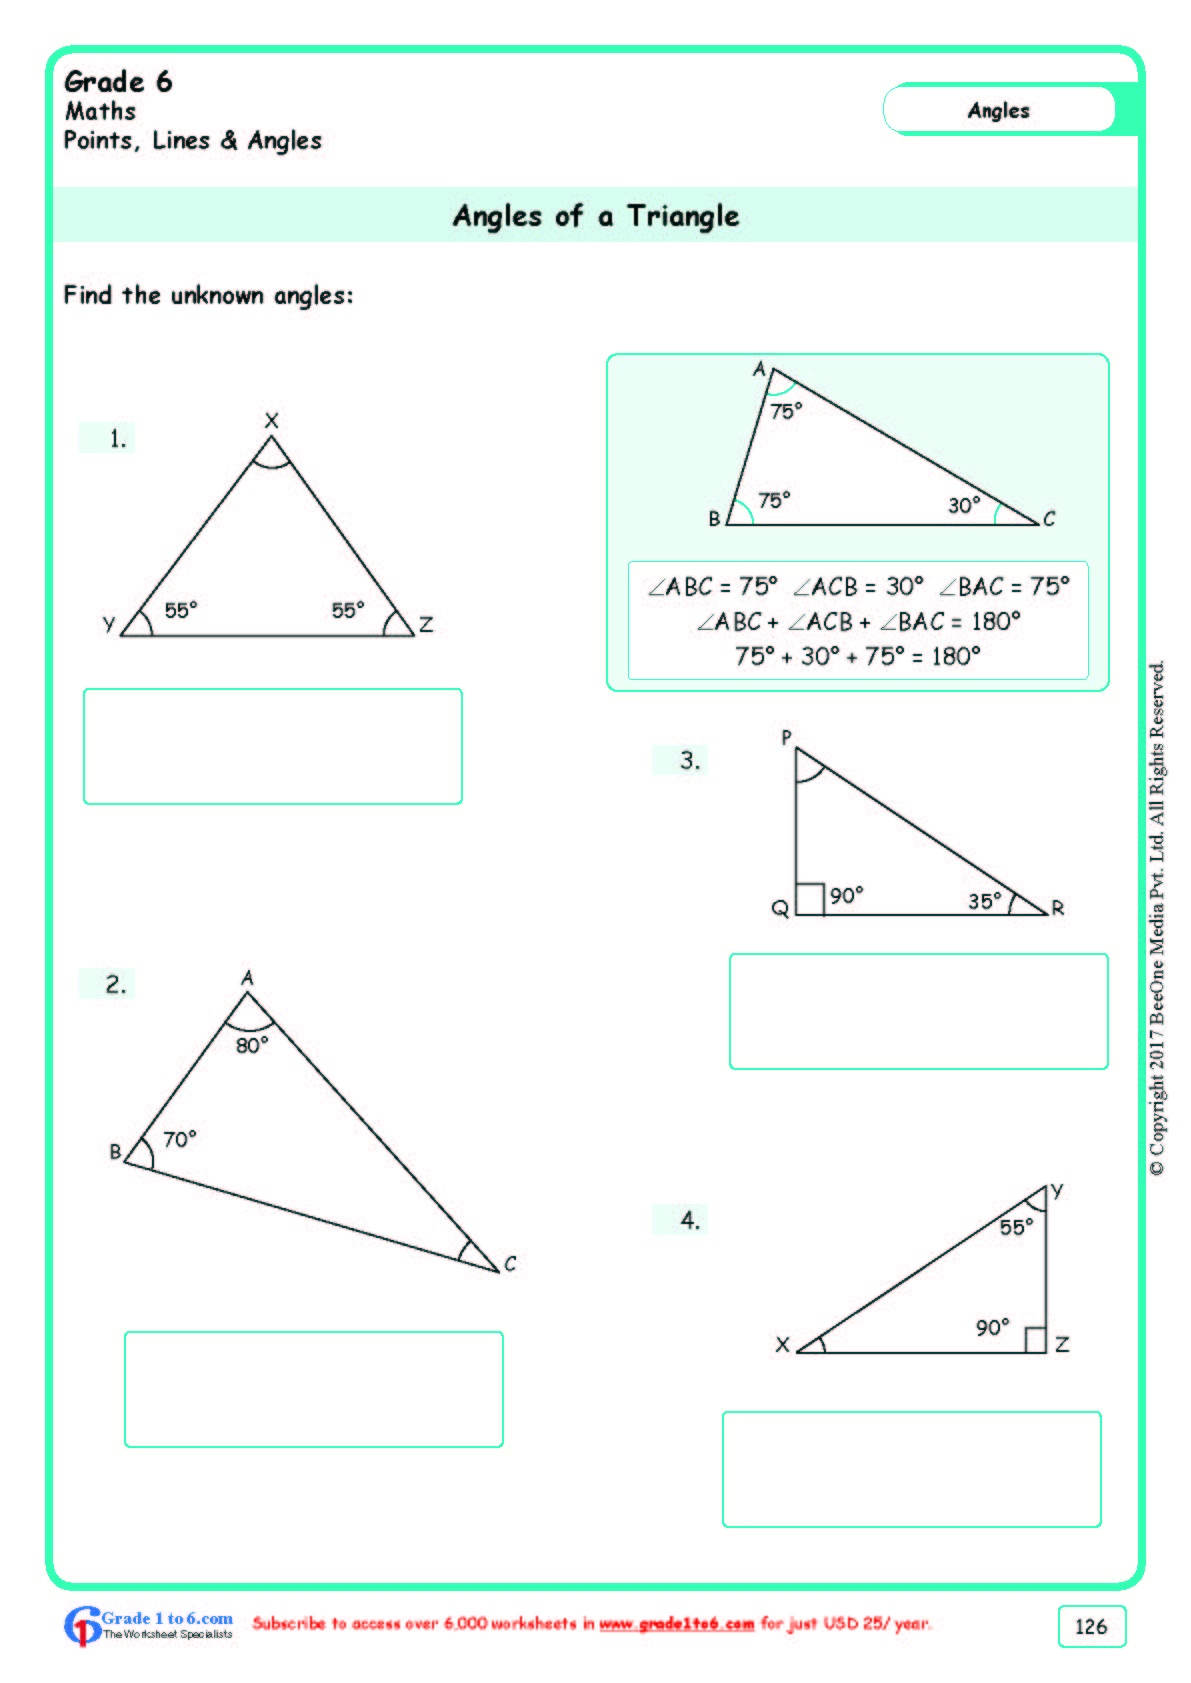 hight resolution of Finding Angles of a Triangle Worksheets www.grade1to6.com